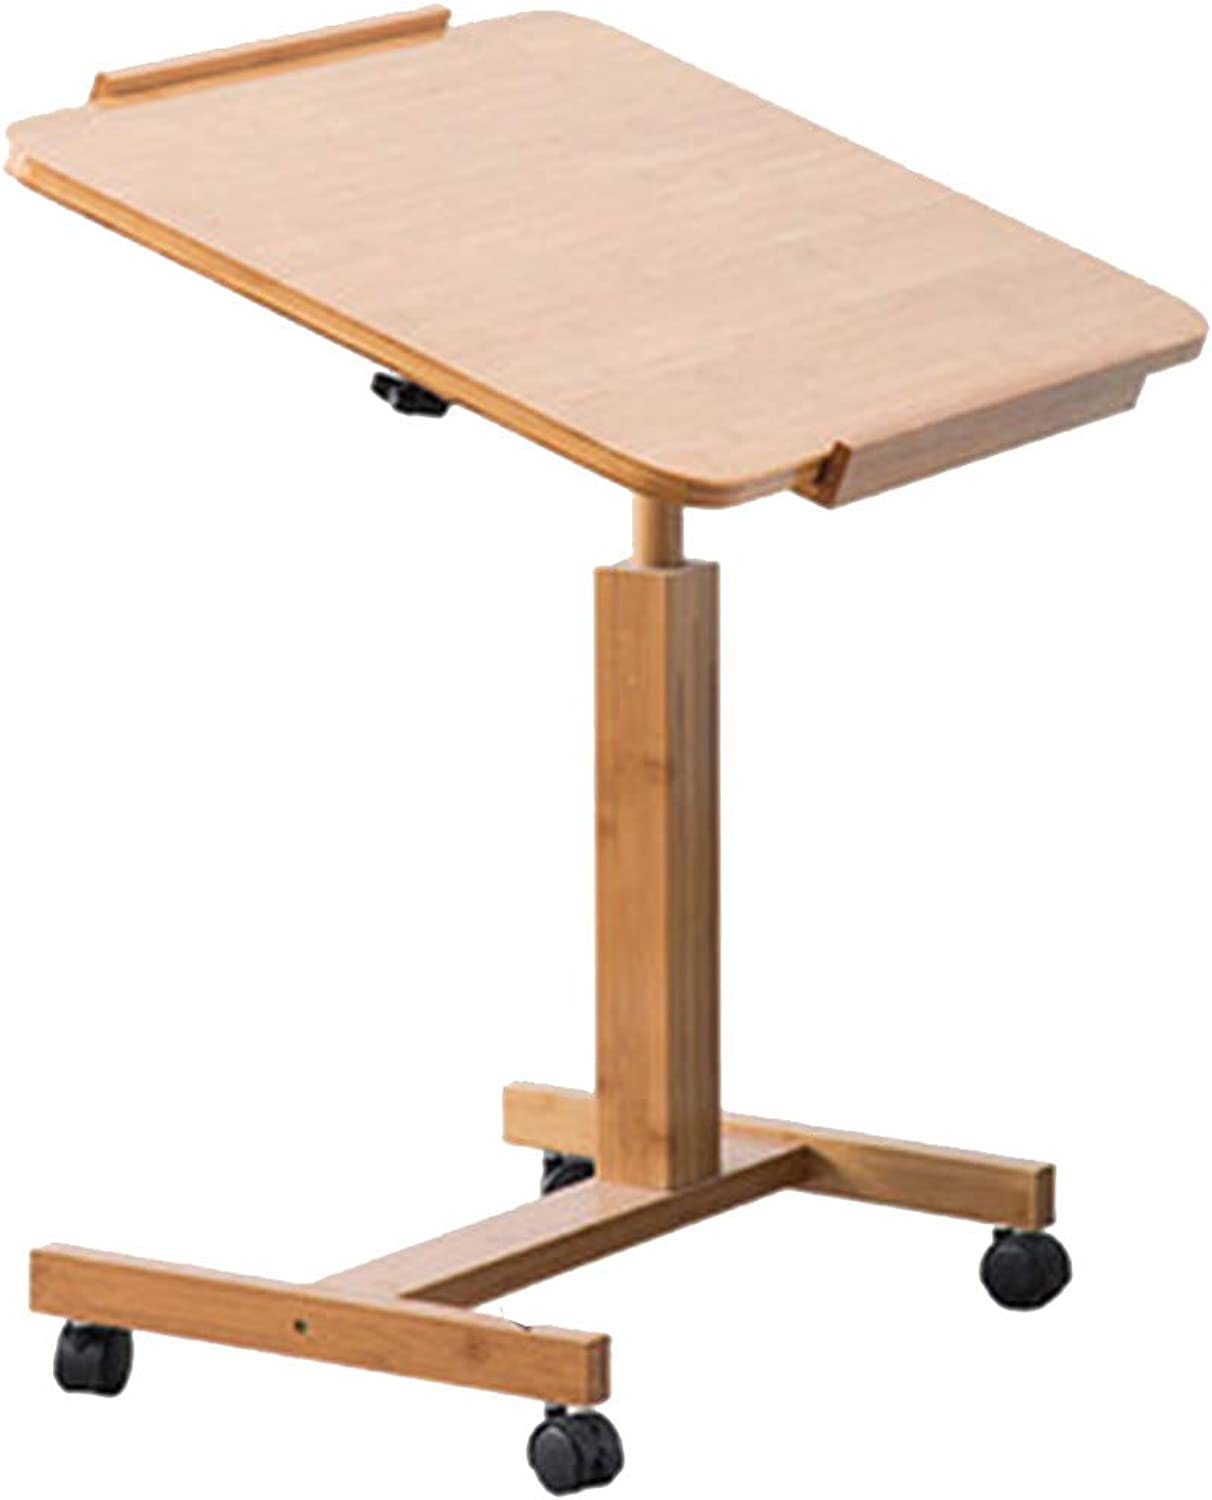 Coffee Table Folding Table Mobile Writing Desk Adjustable Desktop Multifunction Lazy Lifting Desk, Bamboo (Size   60  40 cm)